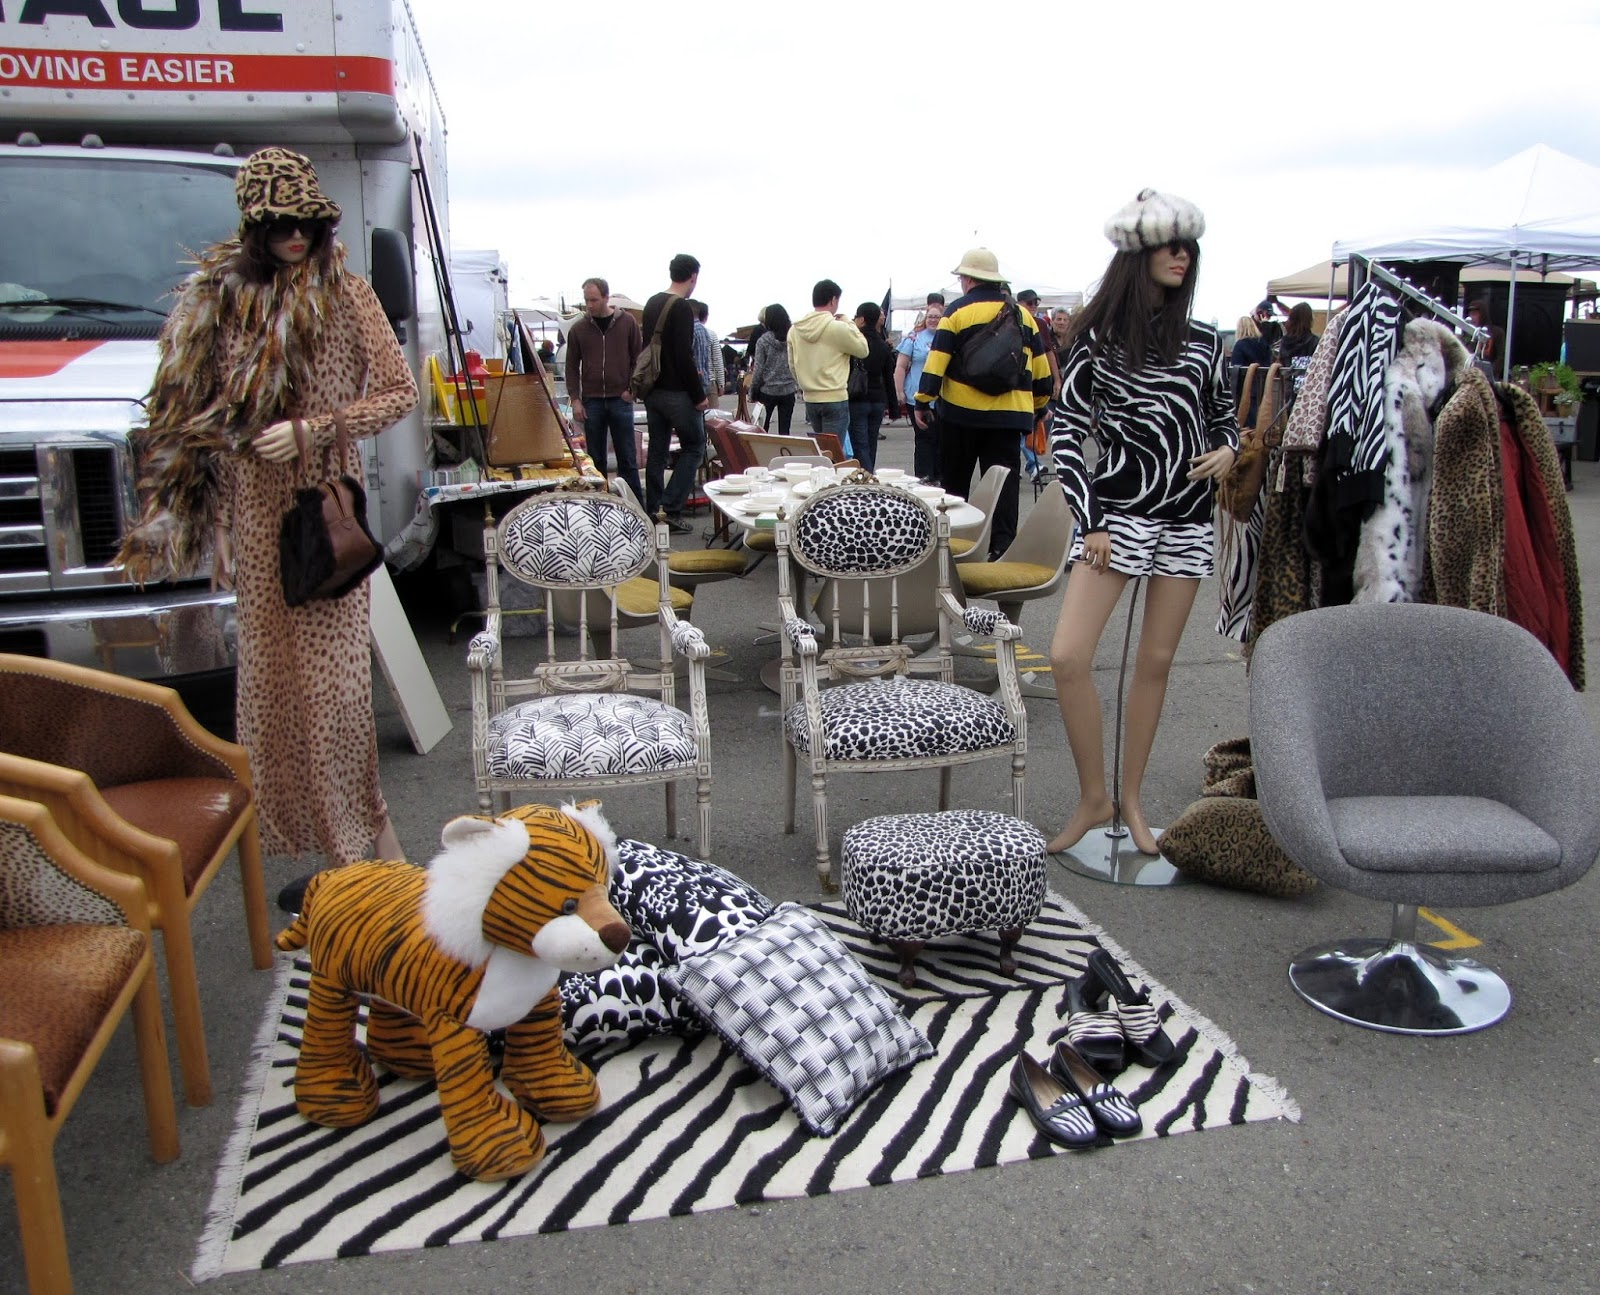 bay area arts out and about alameda point alameda. Black Bedroom Furniture Sets. Home Design Ideas